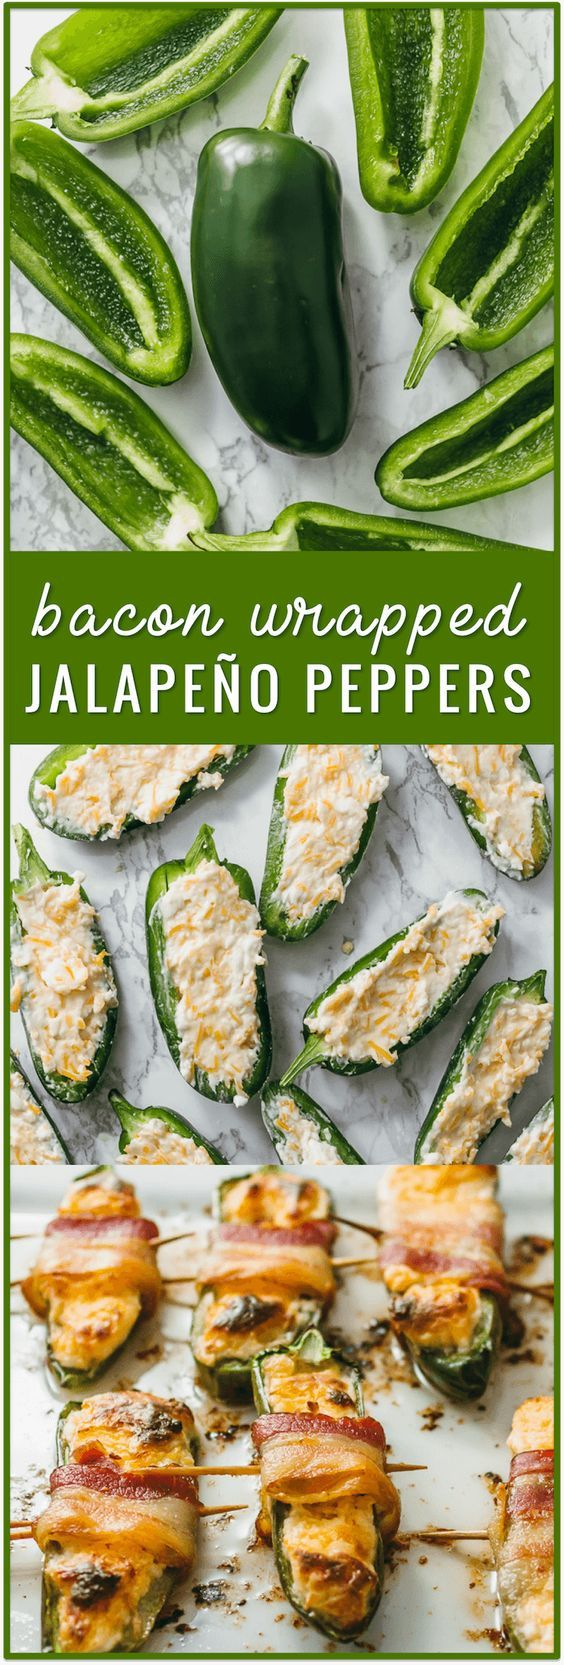 bacon wrapped jalapeño peppers, baked jalapeno poppers, cream cheese jalapeno poppers, fried jalapeno poppers, cream cheese stuffed jalapenos, recipe, grilled, dip, with sausage, easy, simple, fast, wrapped in bacon, biscuits, healthy, chicken via @savory_tooth, keto, low carb, ketogenic diet